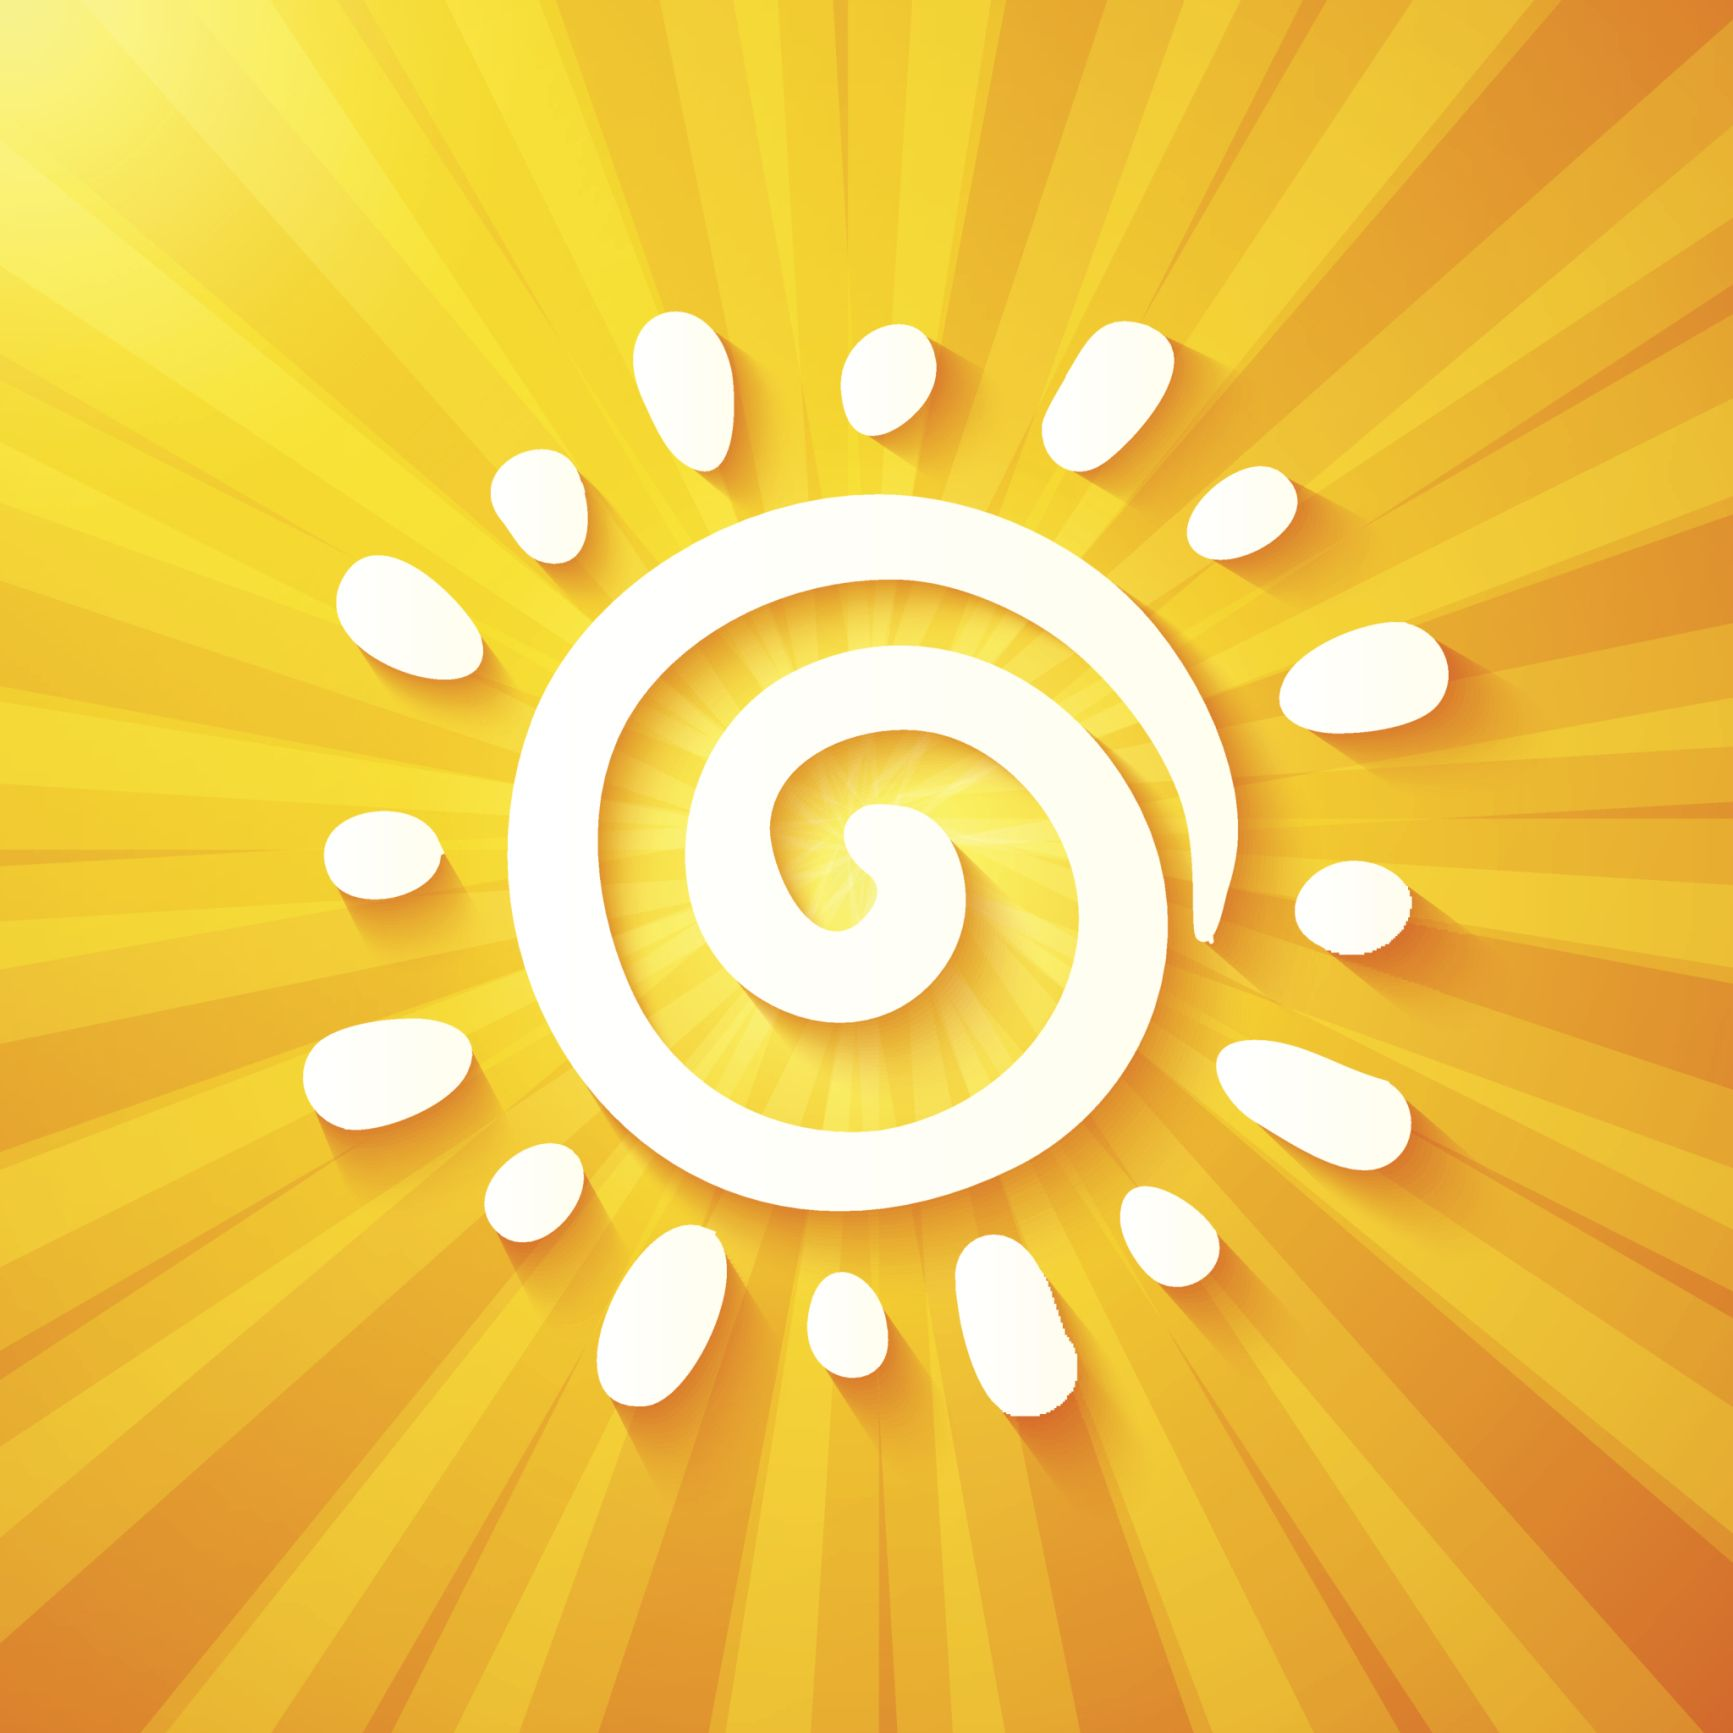 Buy White Cutout Paper Sun on Yellow Background by art_of_sun on GraphicRiver. White vector cutout paper sun on yellow background Yellow Background, Buy Posters, Digital Illustration, Sunlight, Illustrations Posters, Backdrops, Abstract, Wallpaper